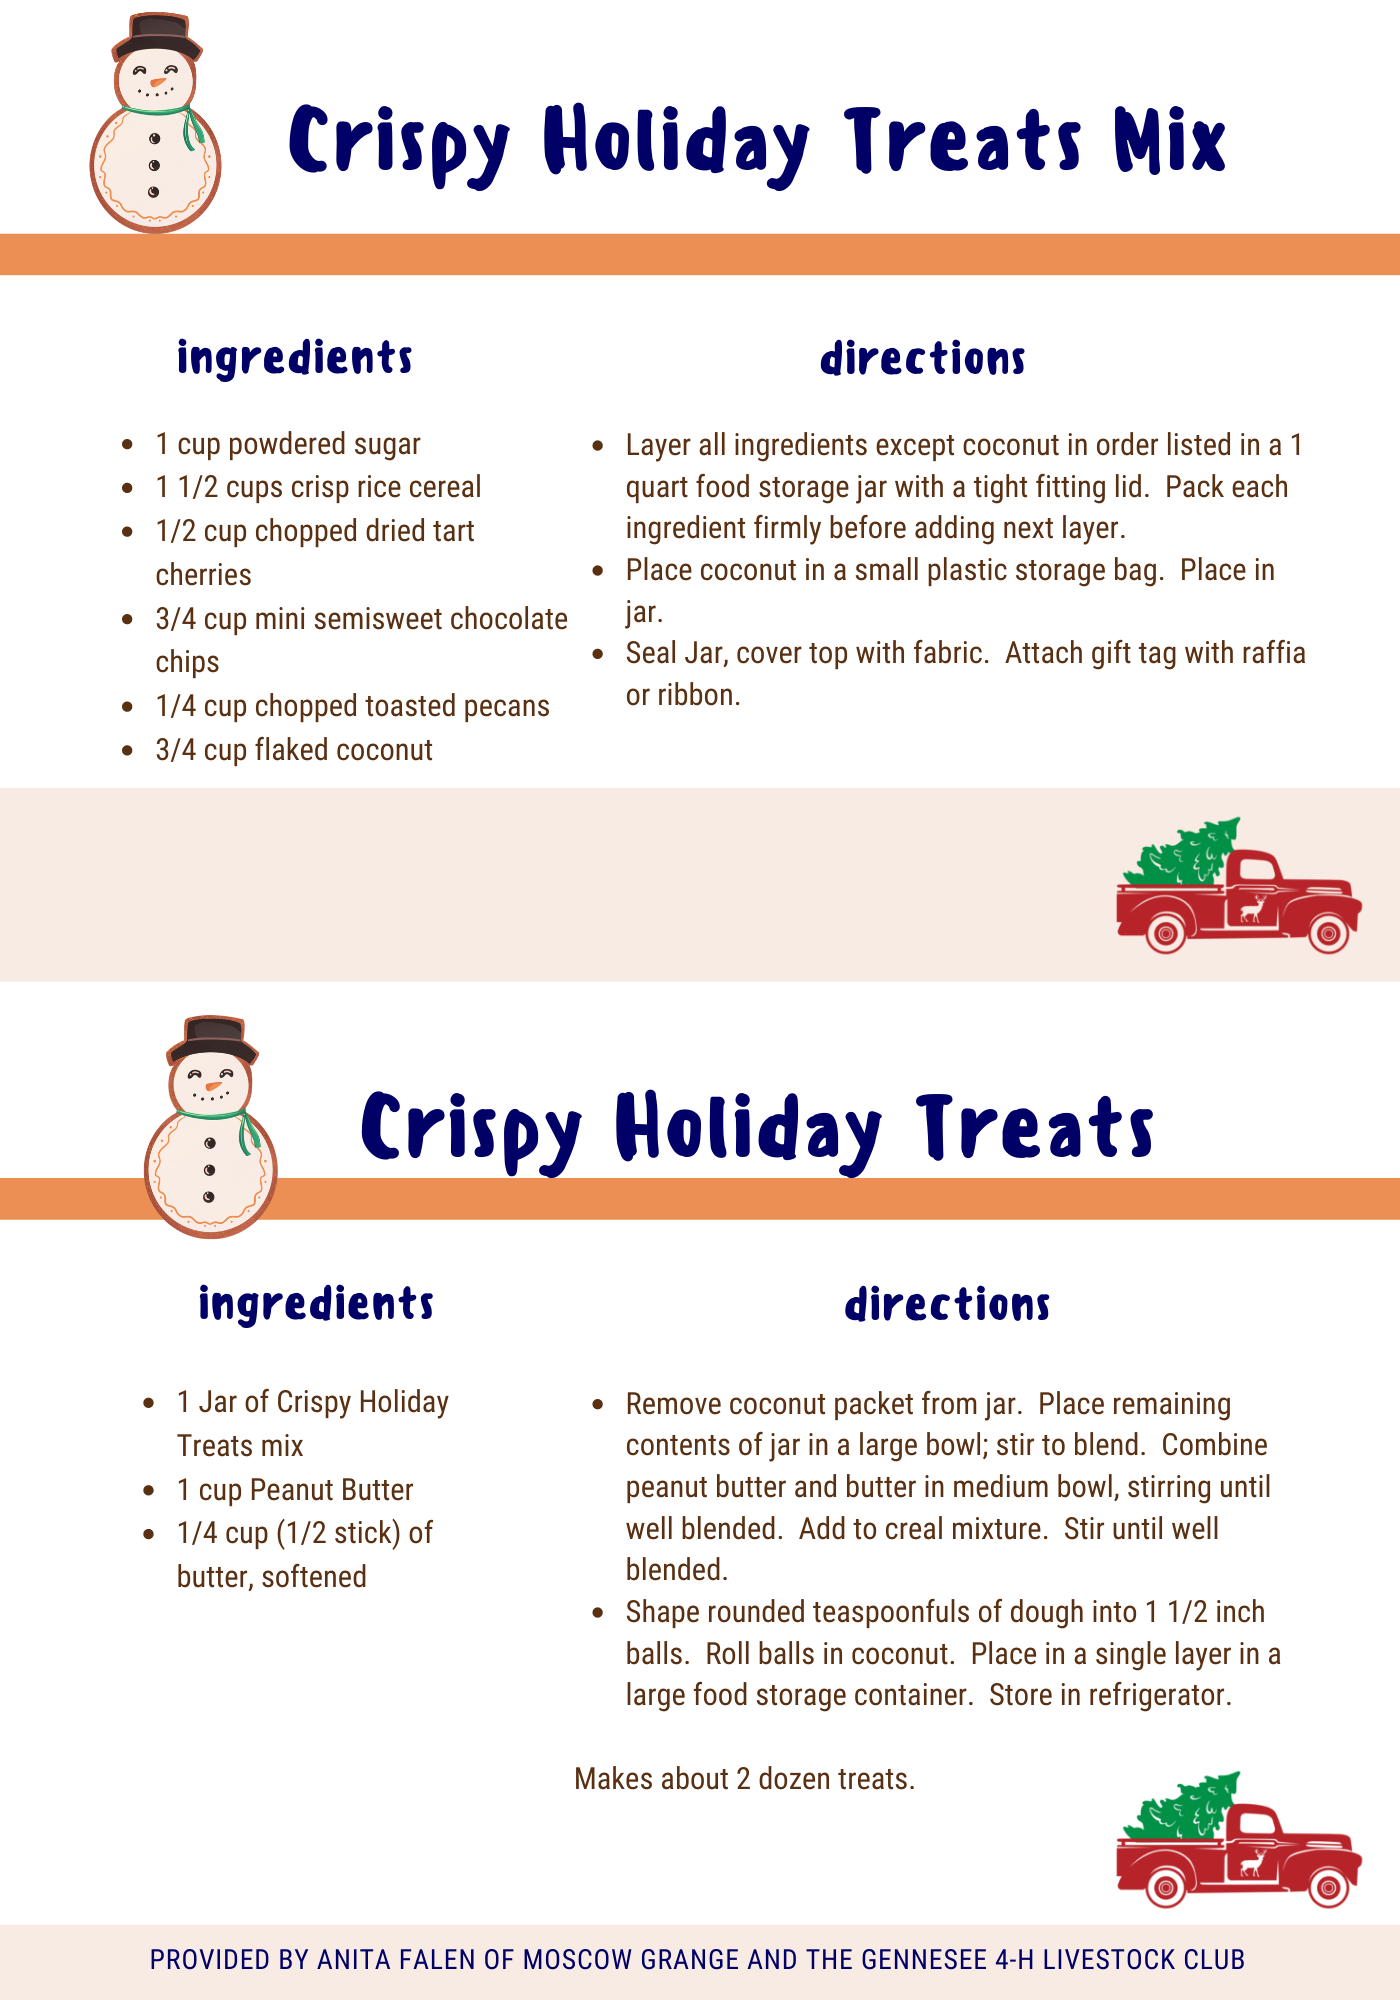 Crispy Holiday Treats